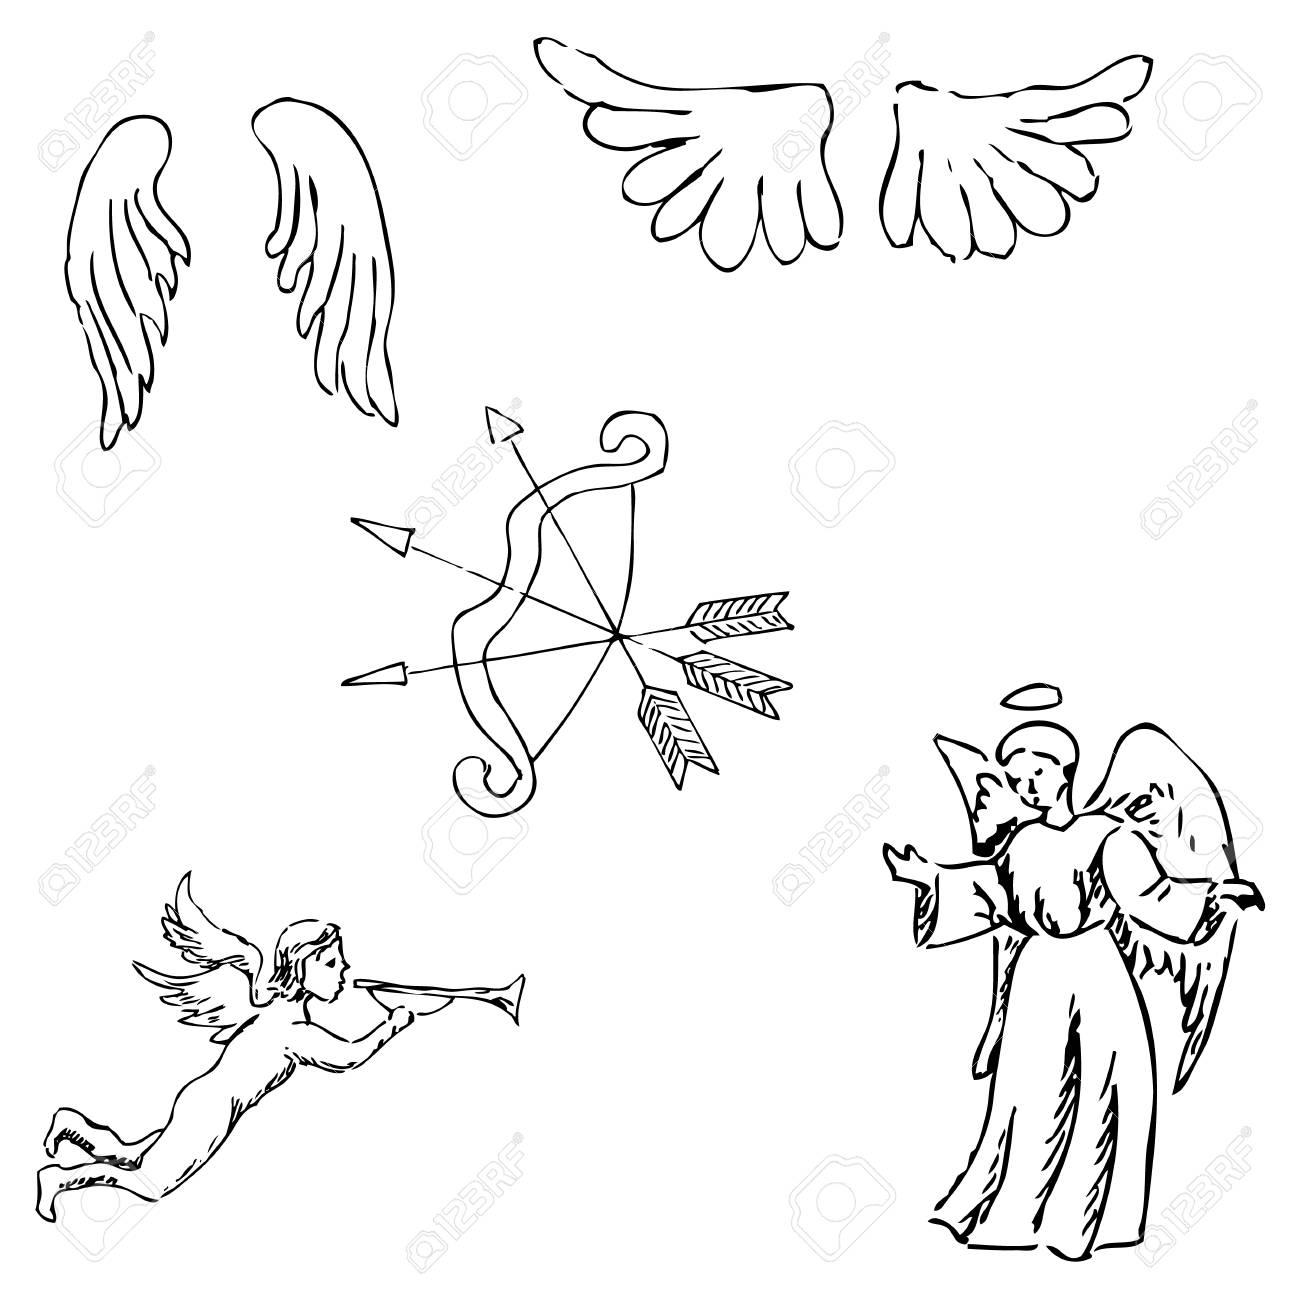 1300x1300 The Angels. Onions And Wings. Pencil Sketch By Hand. Vector Image